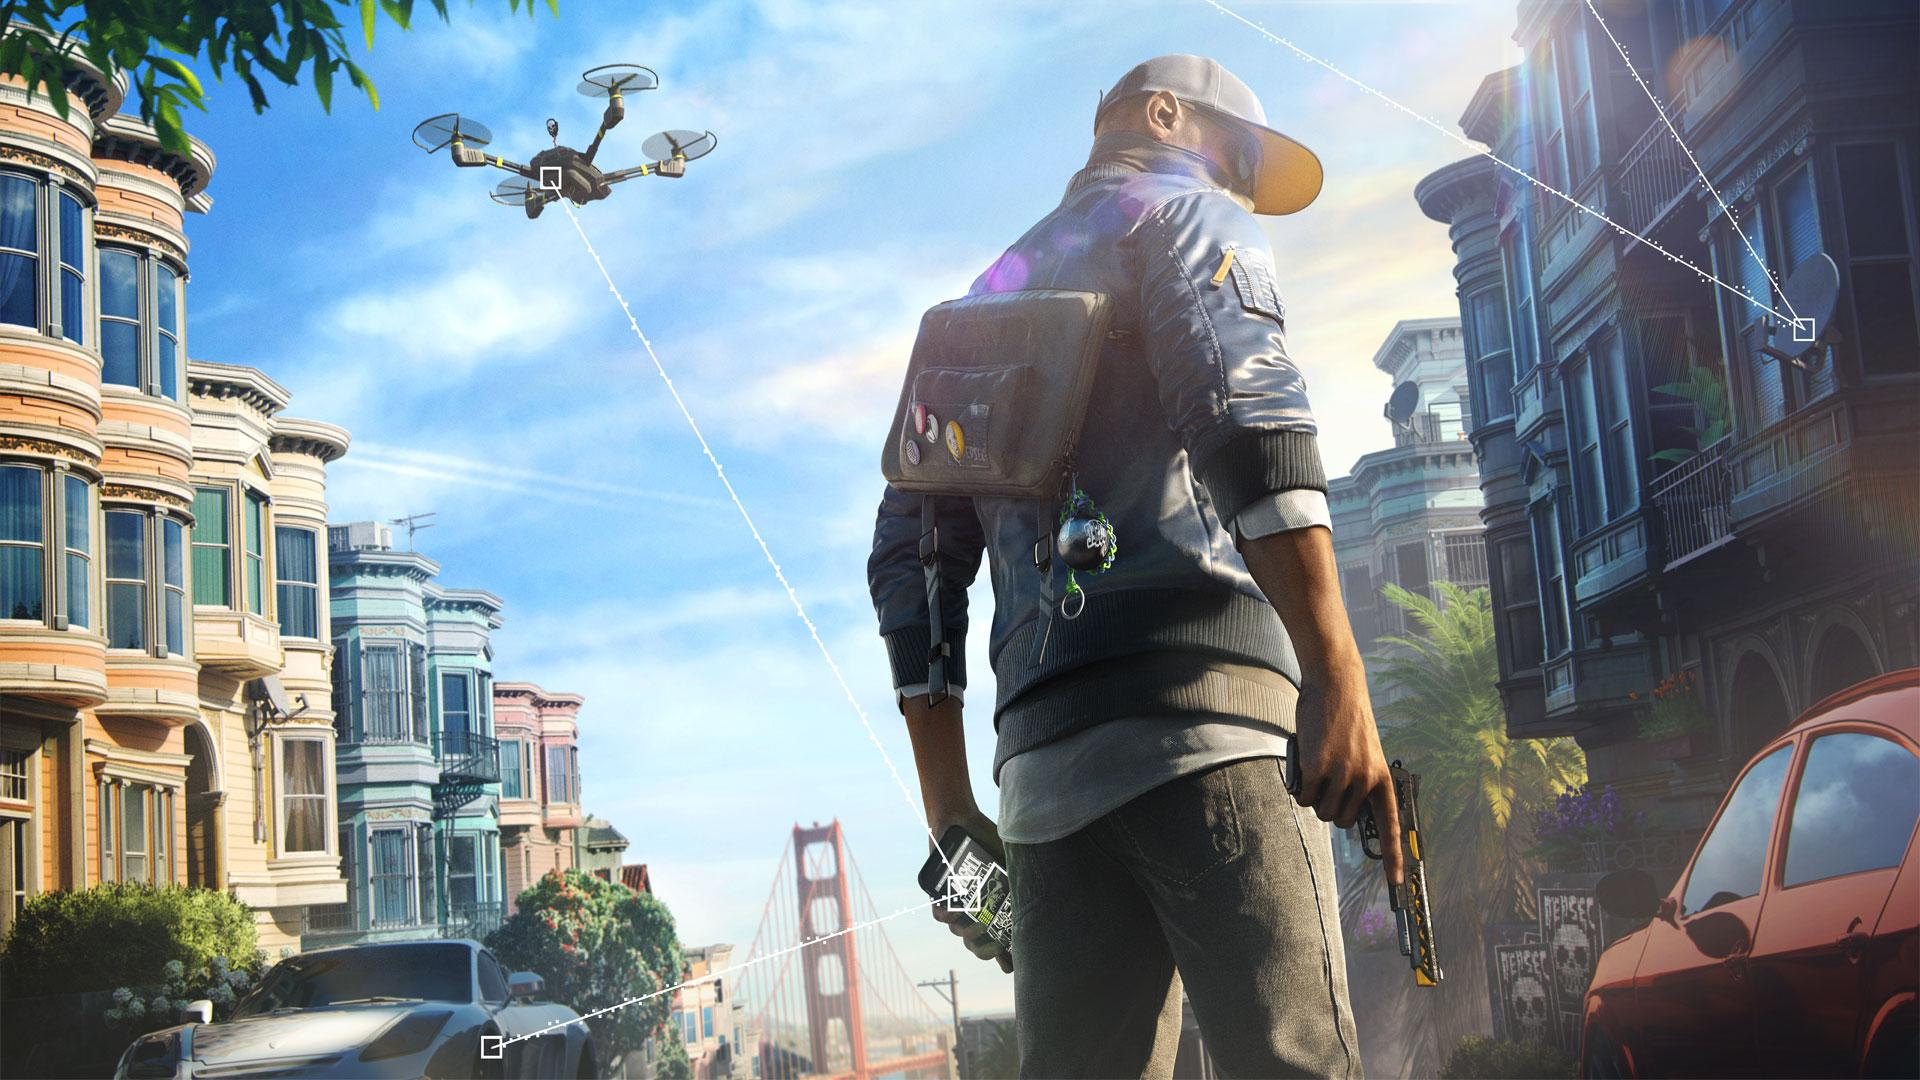 Watch Dogs 2 remains a superb game